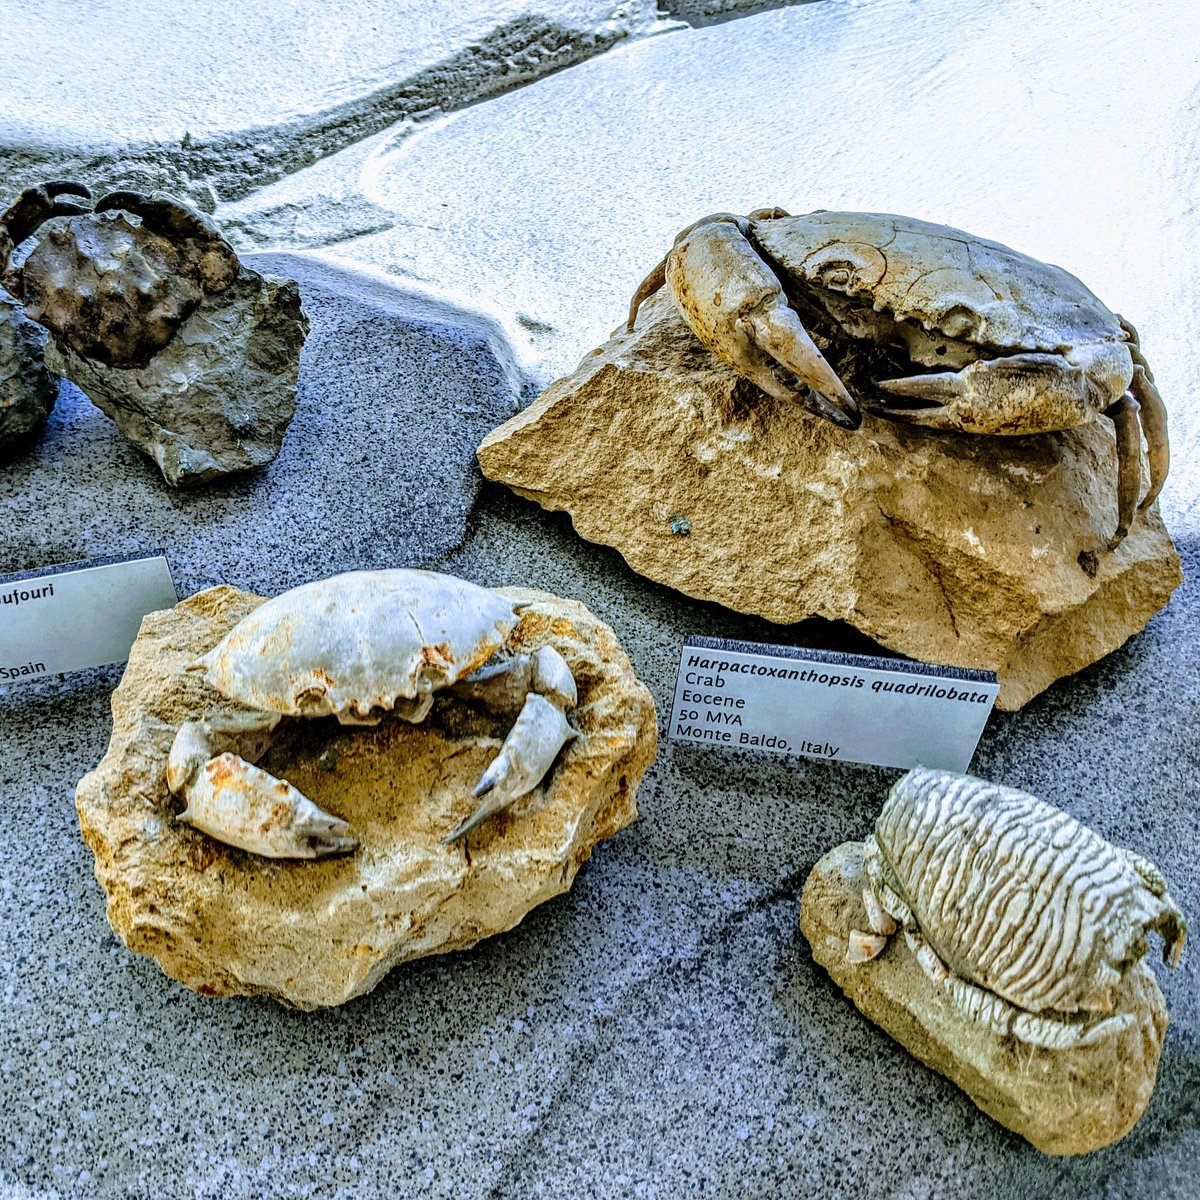 How about a crab party for #fossilfriday? These are beautifully prepared fossil crabs from the Eocene of Italy. On display in the whale room! #fossil #fossils #crab #crabs #crabby #feelingcrabby #eocene #cenozoic #paleo #paleontology #crustacean #crustacea #crustaceanspic.twitter.com/SrV5vyMuzt